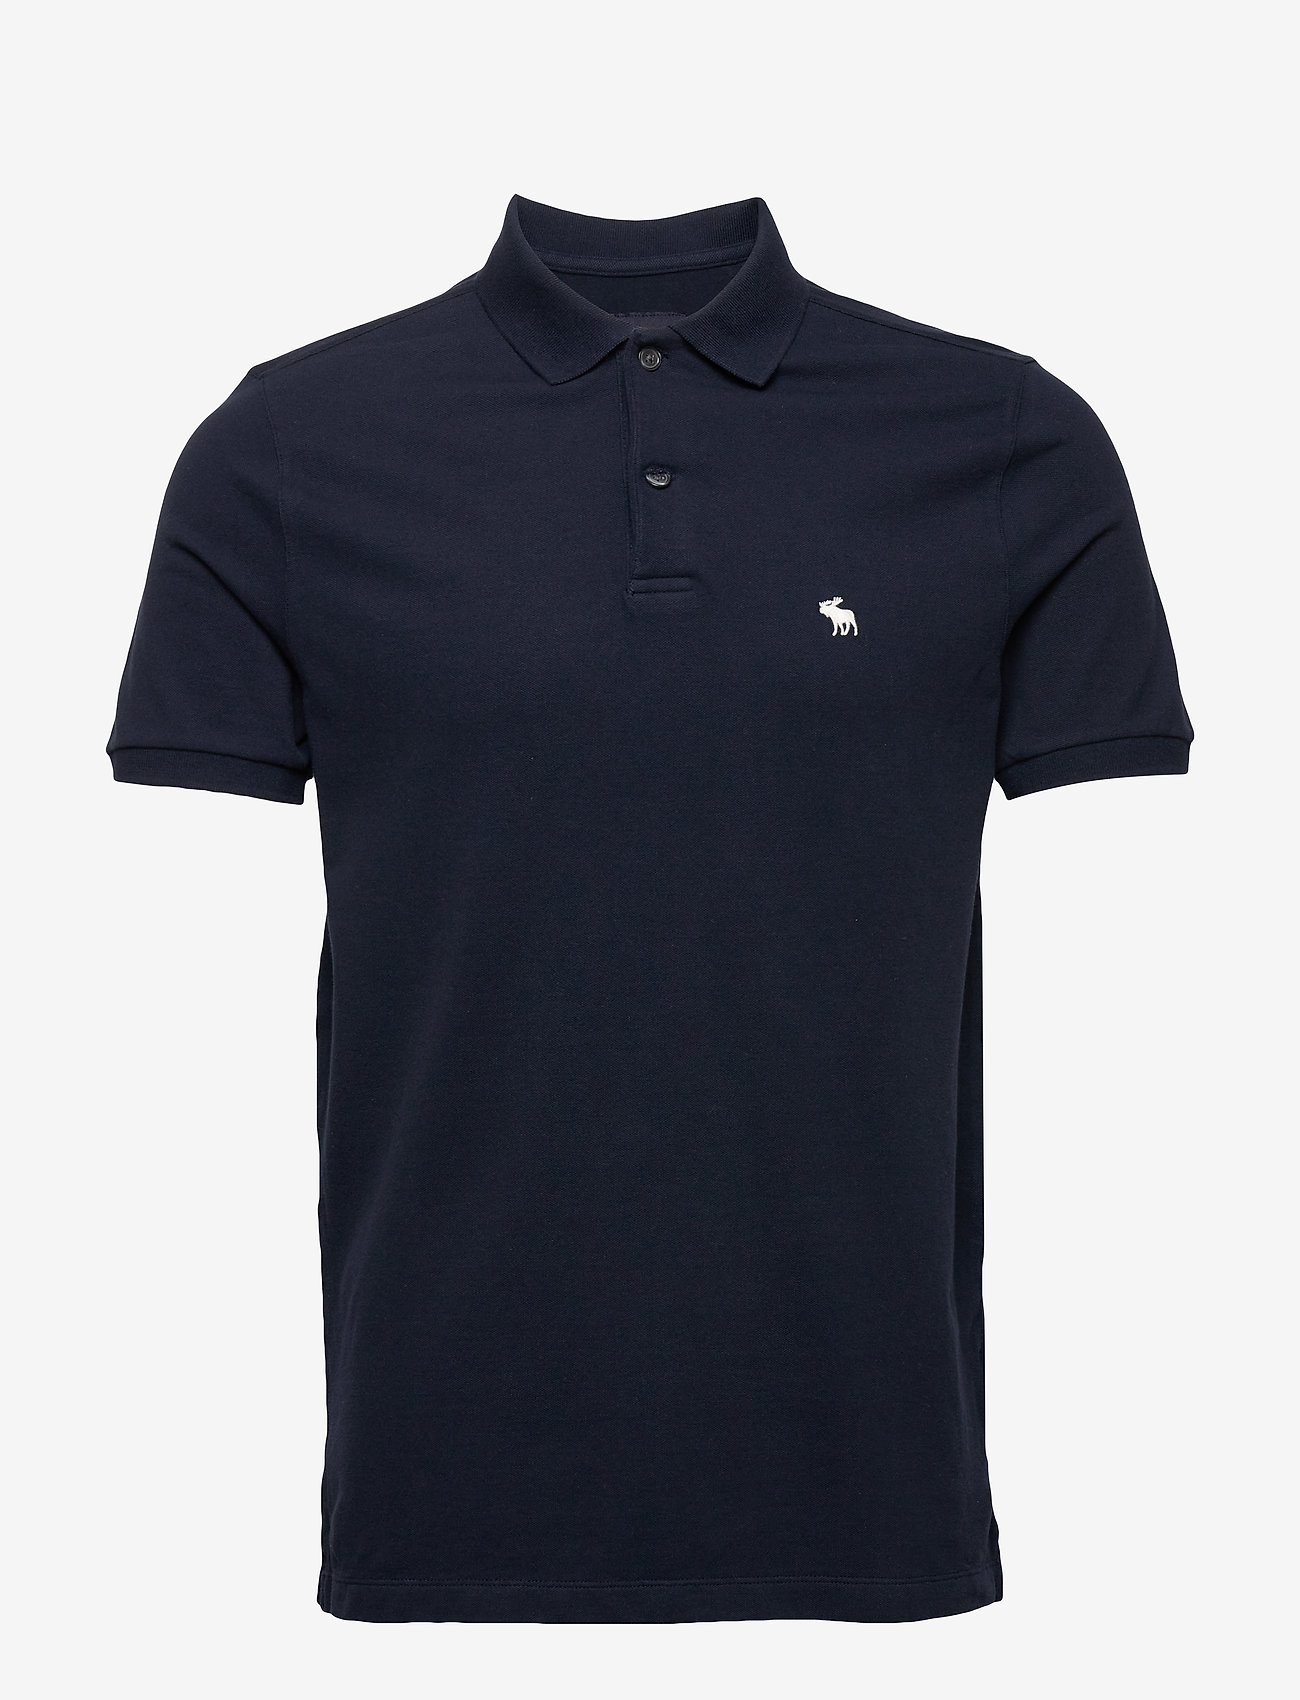 Abercrombie & Fitch - ANF MENS KNITS - polos à manches courtes - navy dd - 0